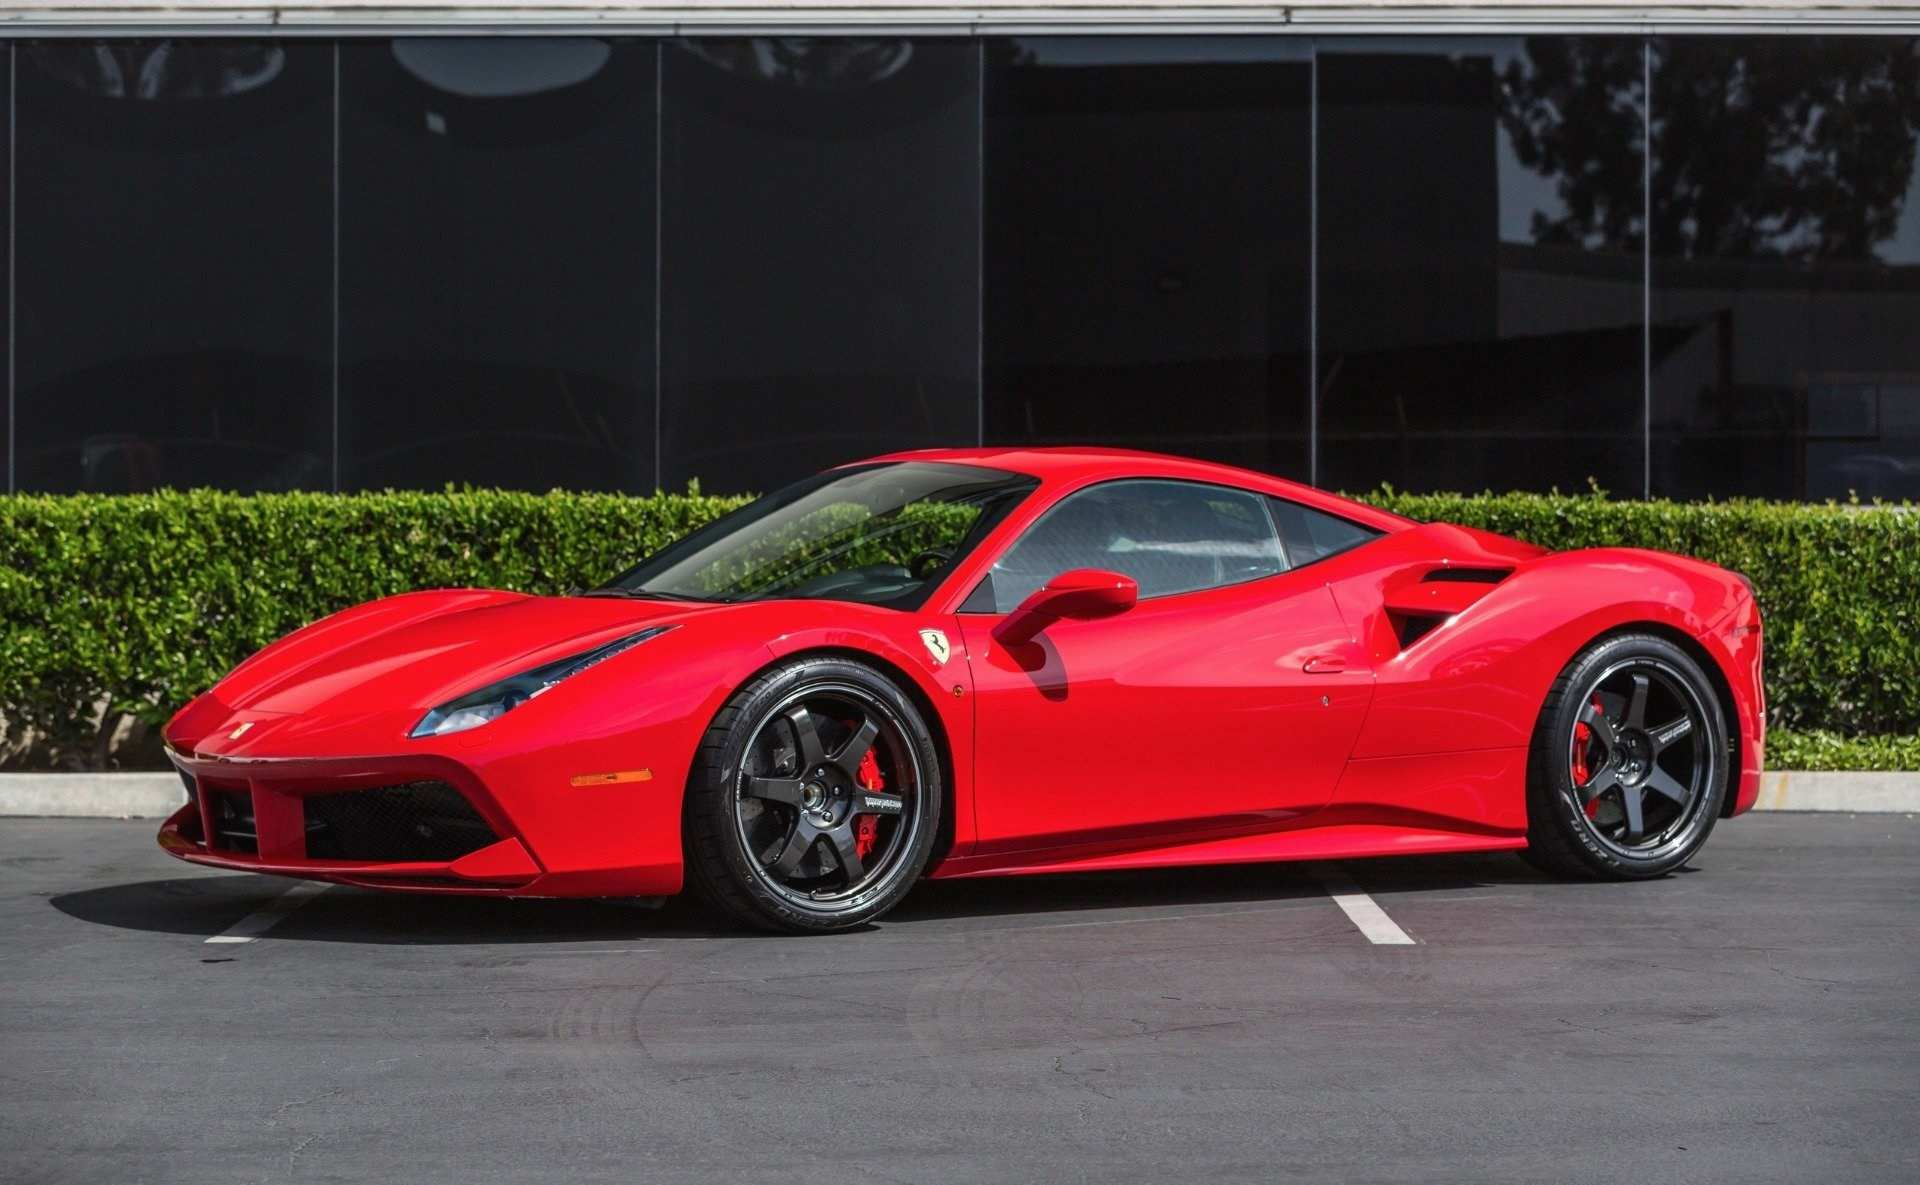 19 Best Review 2020 Ferrari 488 GTB Rumors for 2020 Ferrari 488 GTB